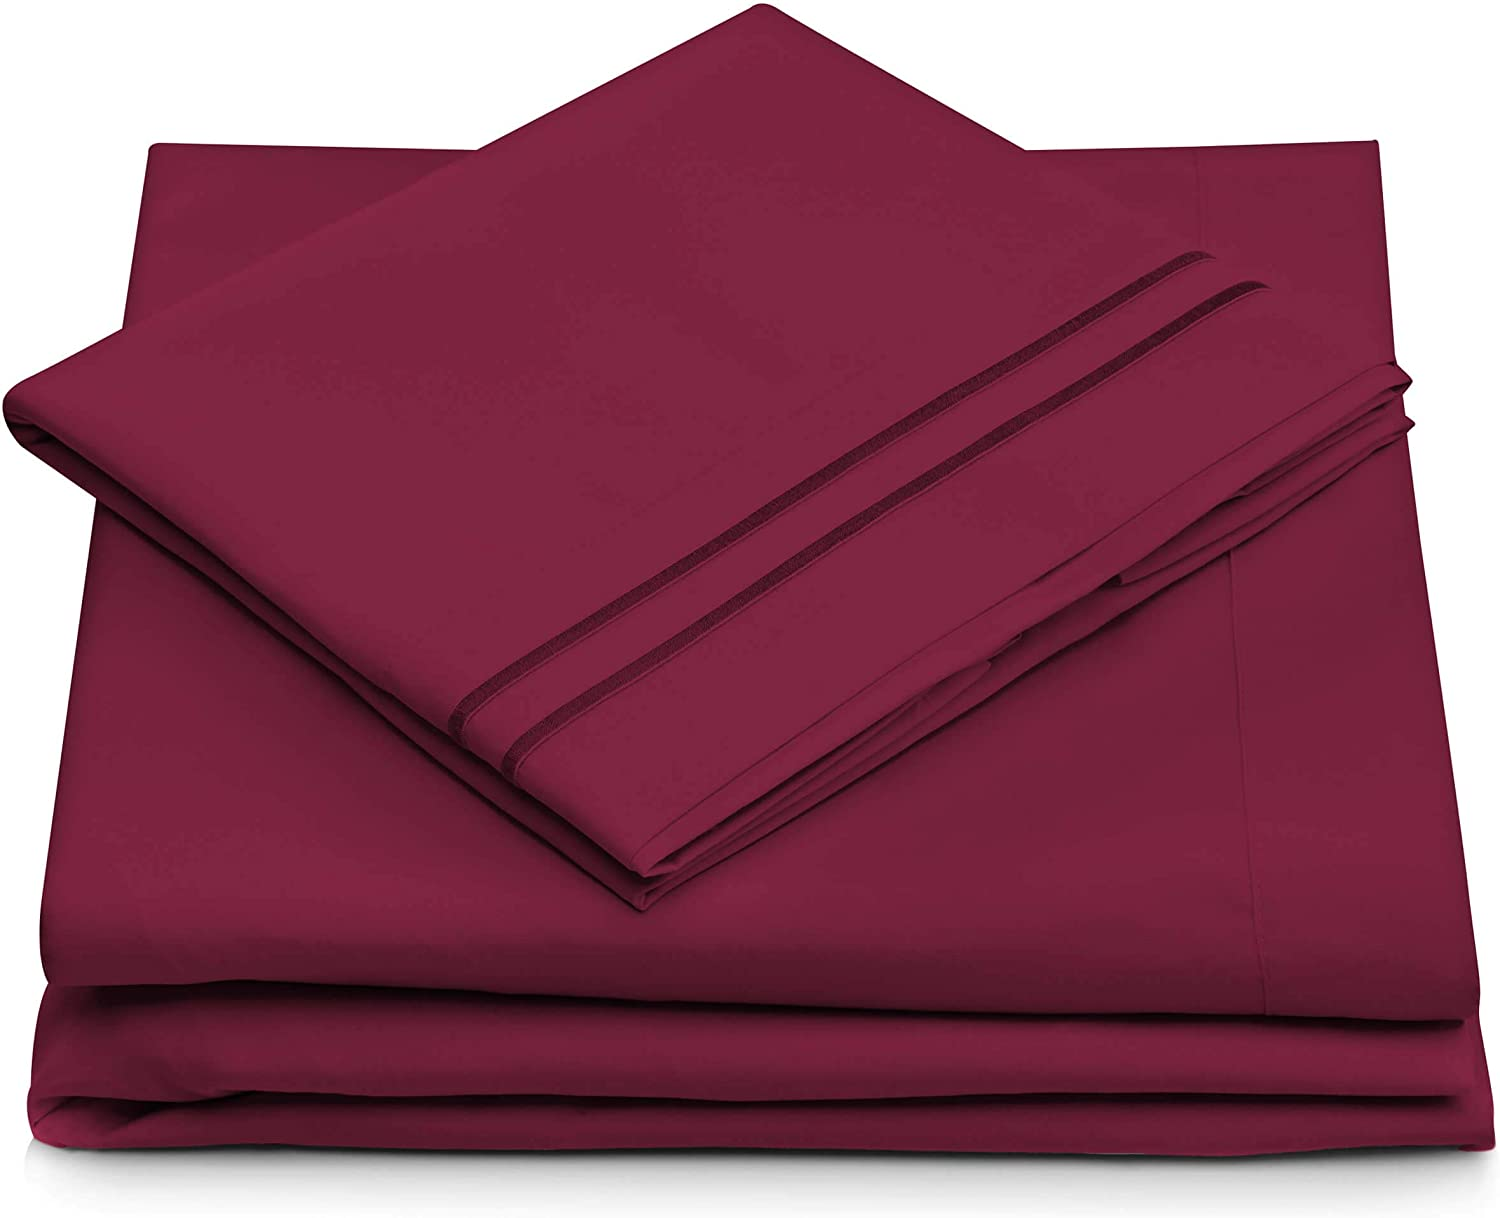 Queen Size Bed Sheets - Fuchsia Luxury Sheet Set - Deep Pocket - Super Soft Hotel Bedding - Cool & Wrinkle Free - 1 Fitted, 1 Flat, 2 Pillow Cases - Magenta Queen Sheets - 4 Piece